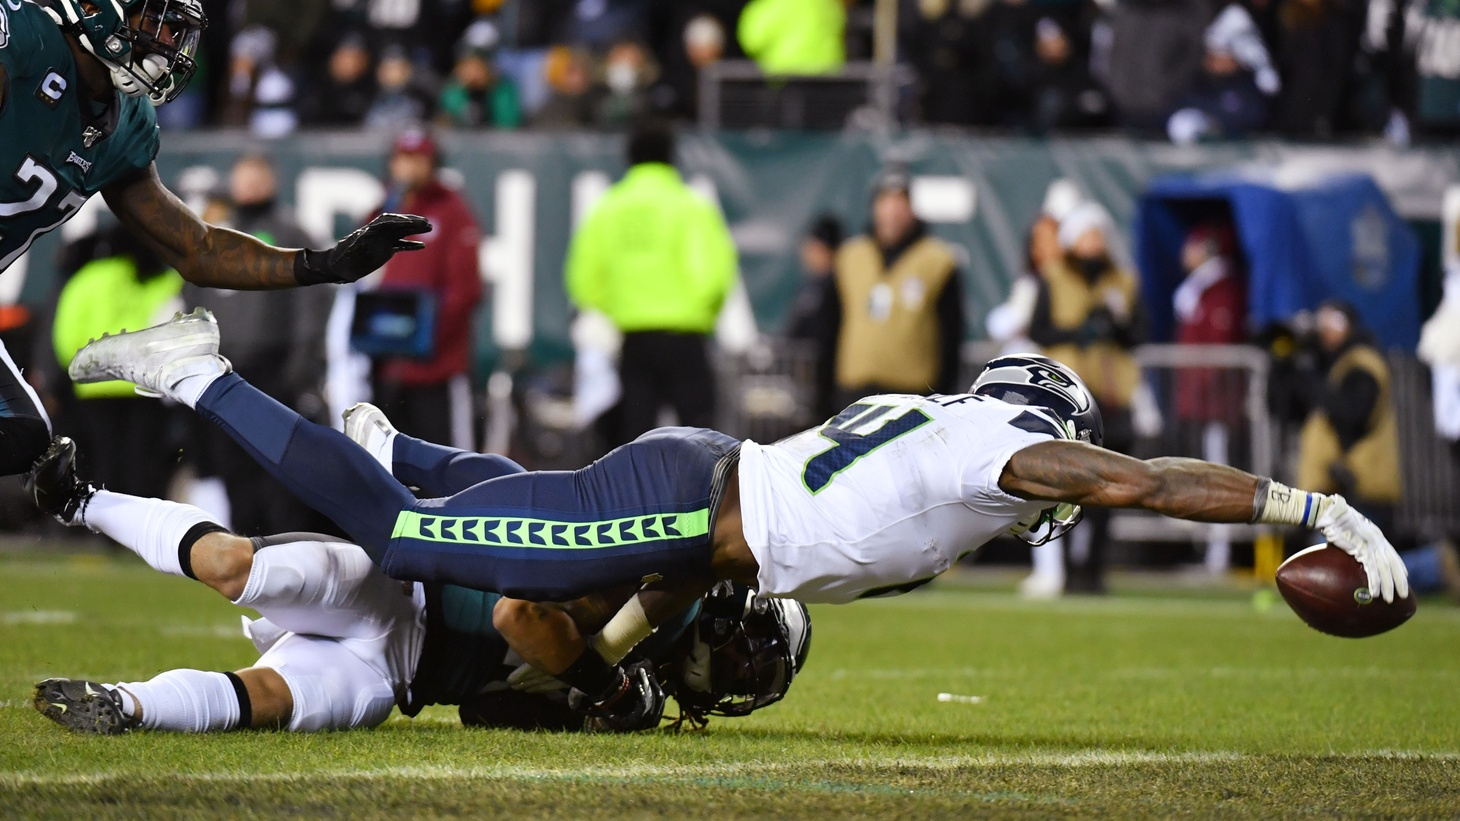 Jan 5, 2020; Philadelphia, Pennsylvania, USA; Seattle Seahawks wide receiver D.K. Metcalf (14) reaches for the endzone to score a touchdown as Philadelphia Eagles cornerback Avonte Maddox (29) attempts to make the tackle during the third quarter in a NFC Wild Card playoff football game at Lincoln Financial Field.